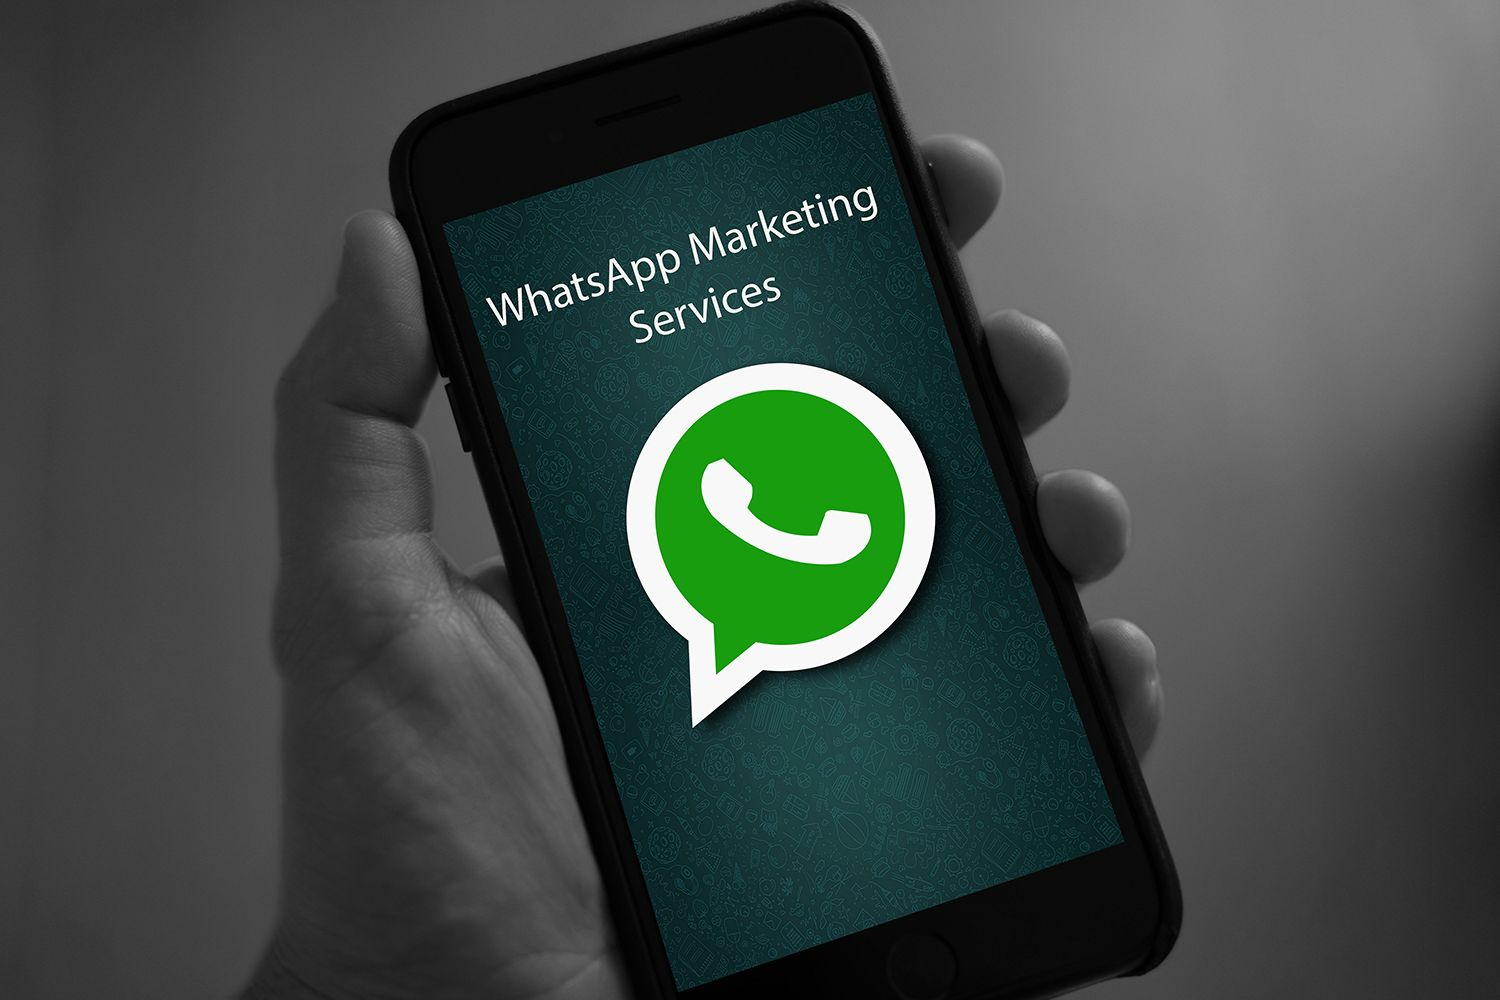 WhatsApp Marketing Services WhatsApp becomes most popular